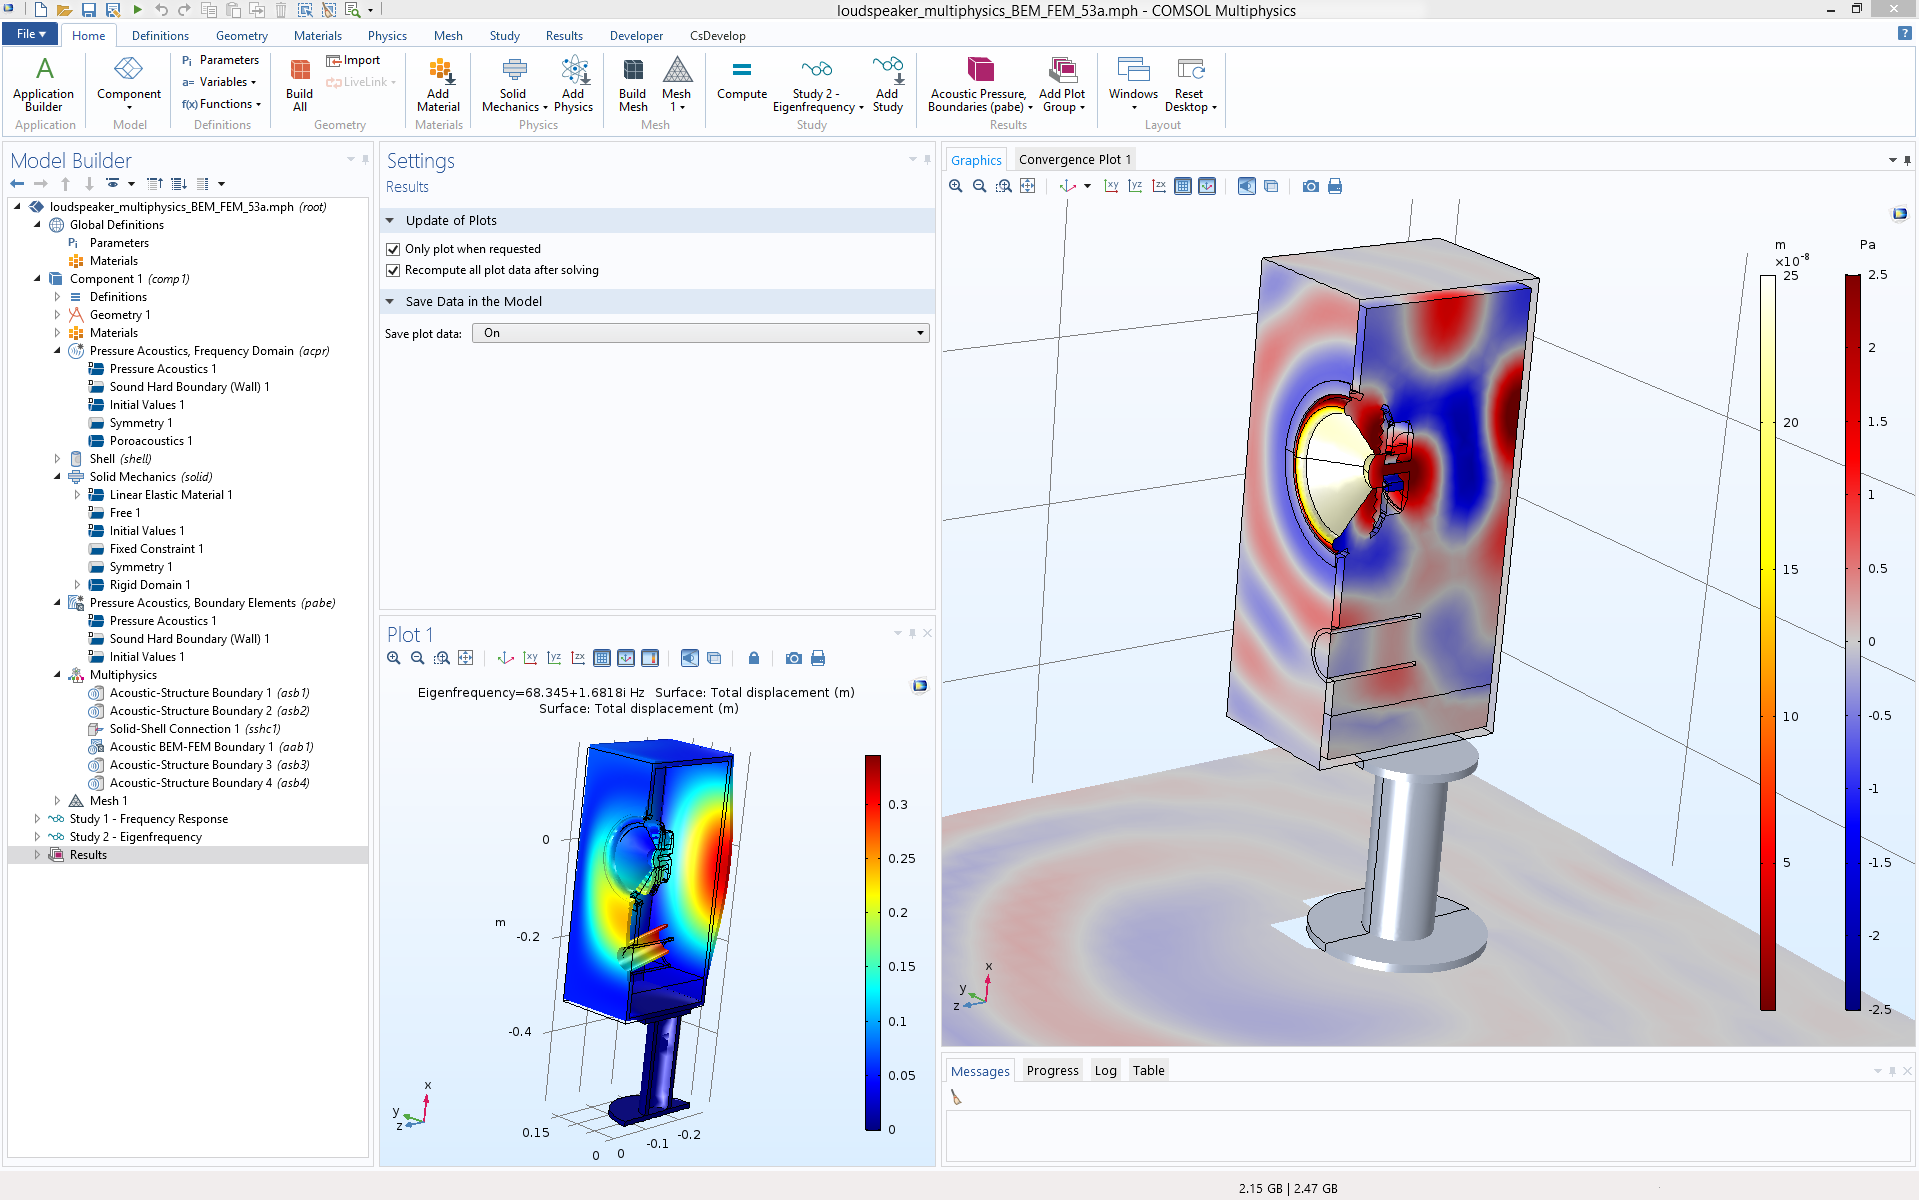 An image showing a multiphysics model of a loudspeaker in the COMSOL Multiphysics® software.